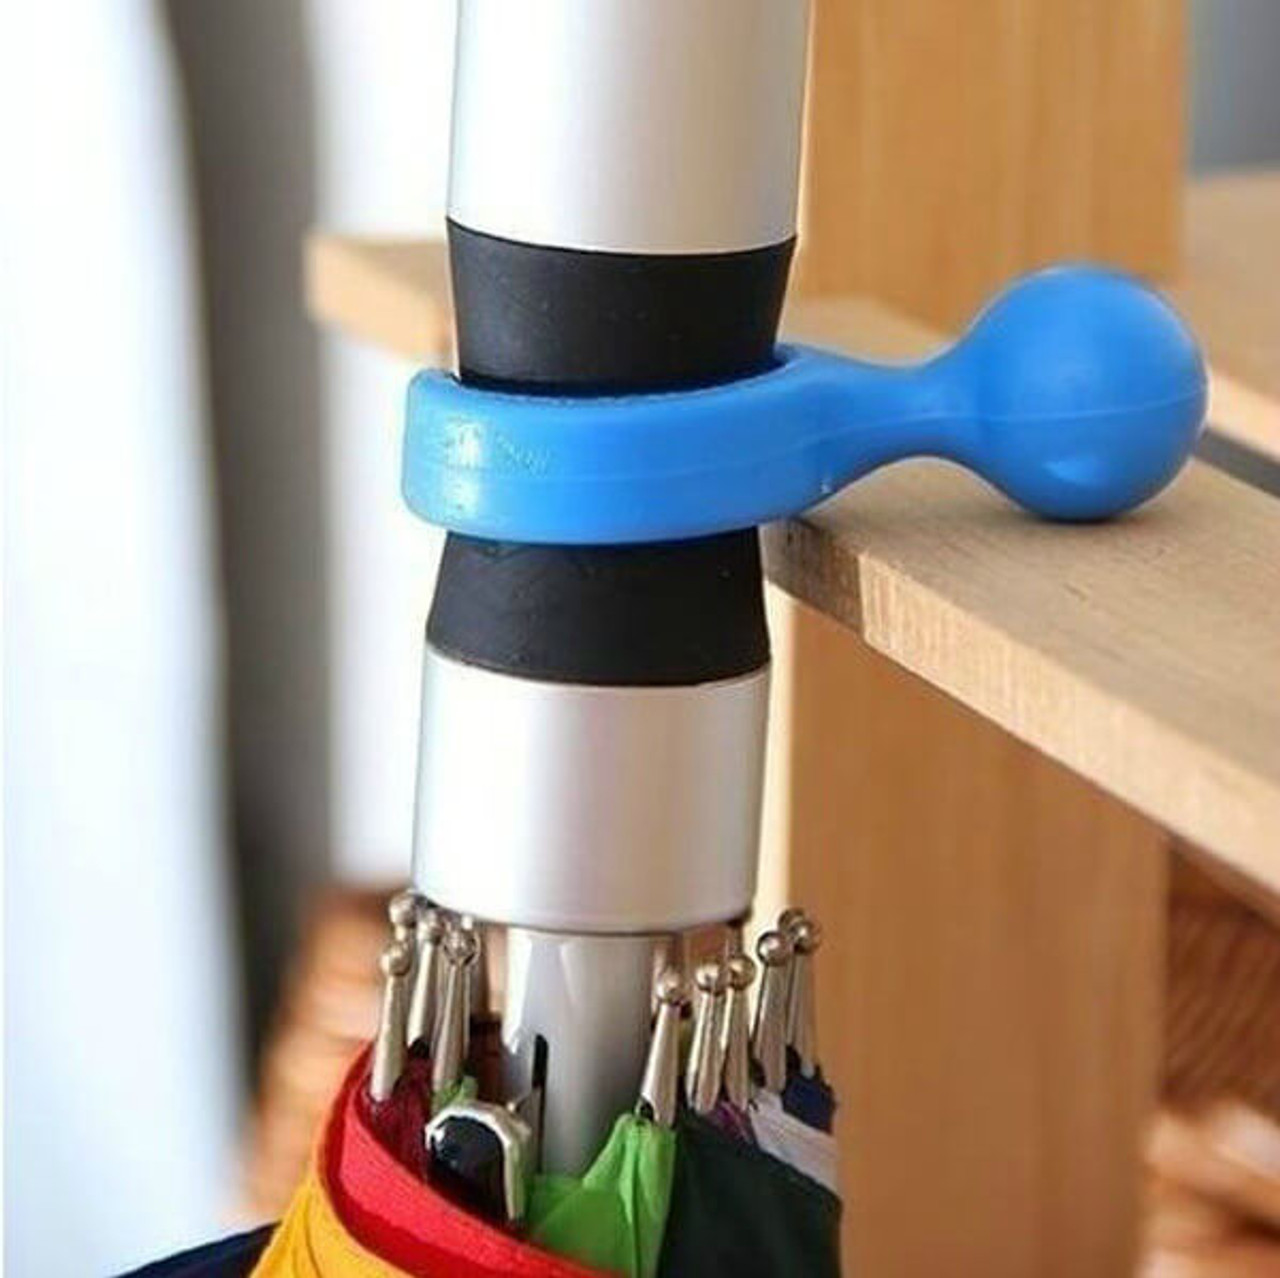 UMBRELLA HANGER COMES IN VARIOUS COLORS